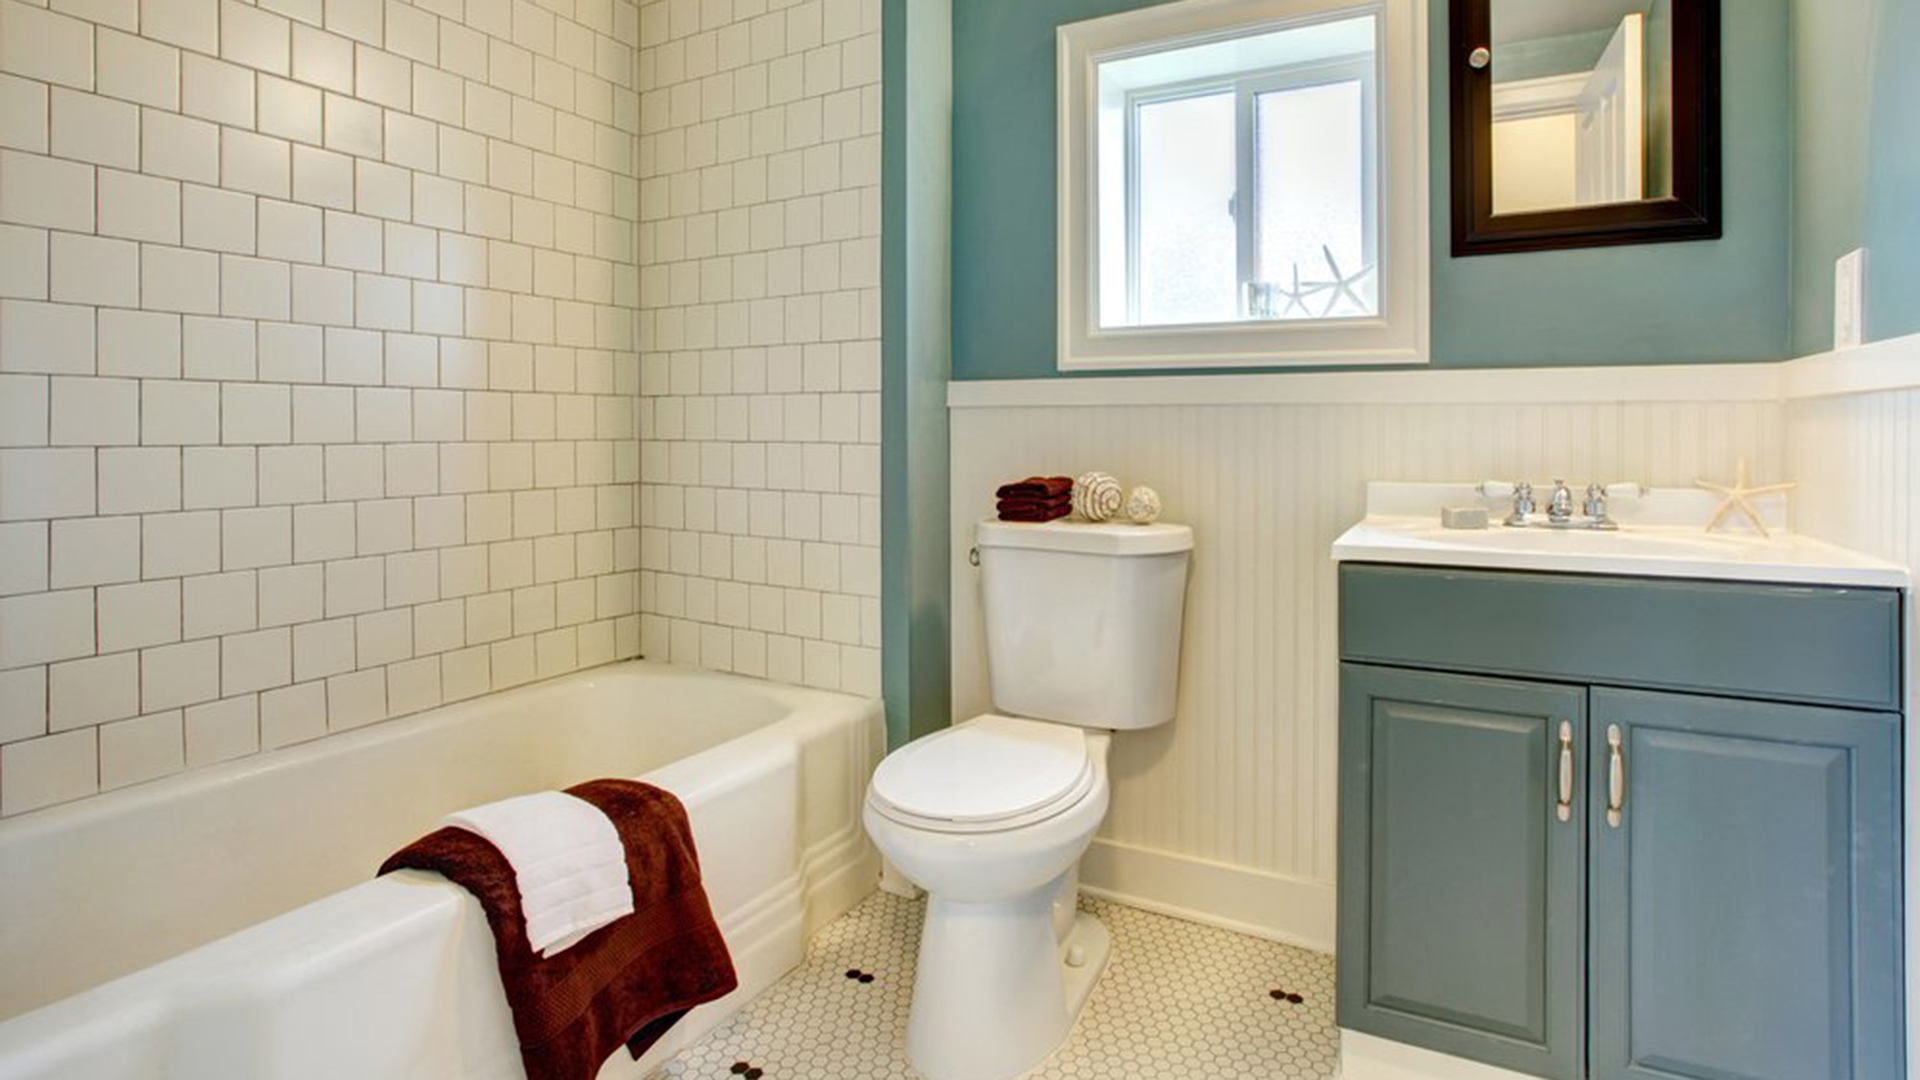 DIY ways to improve rentals bathroom